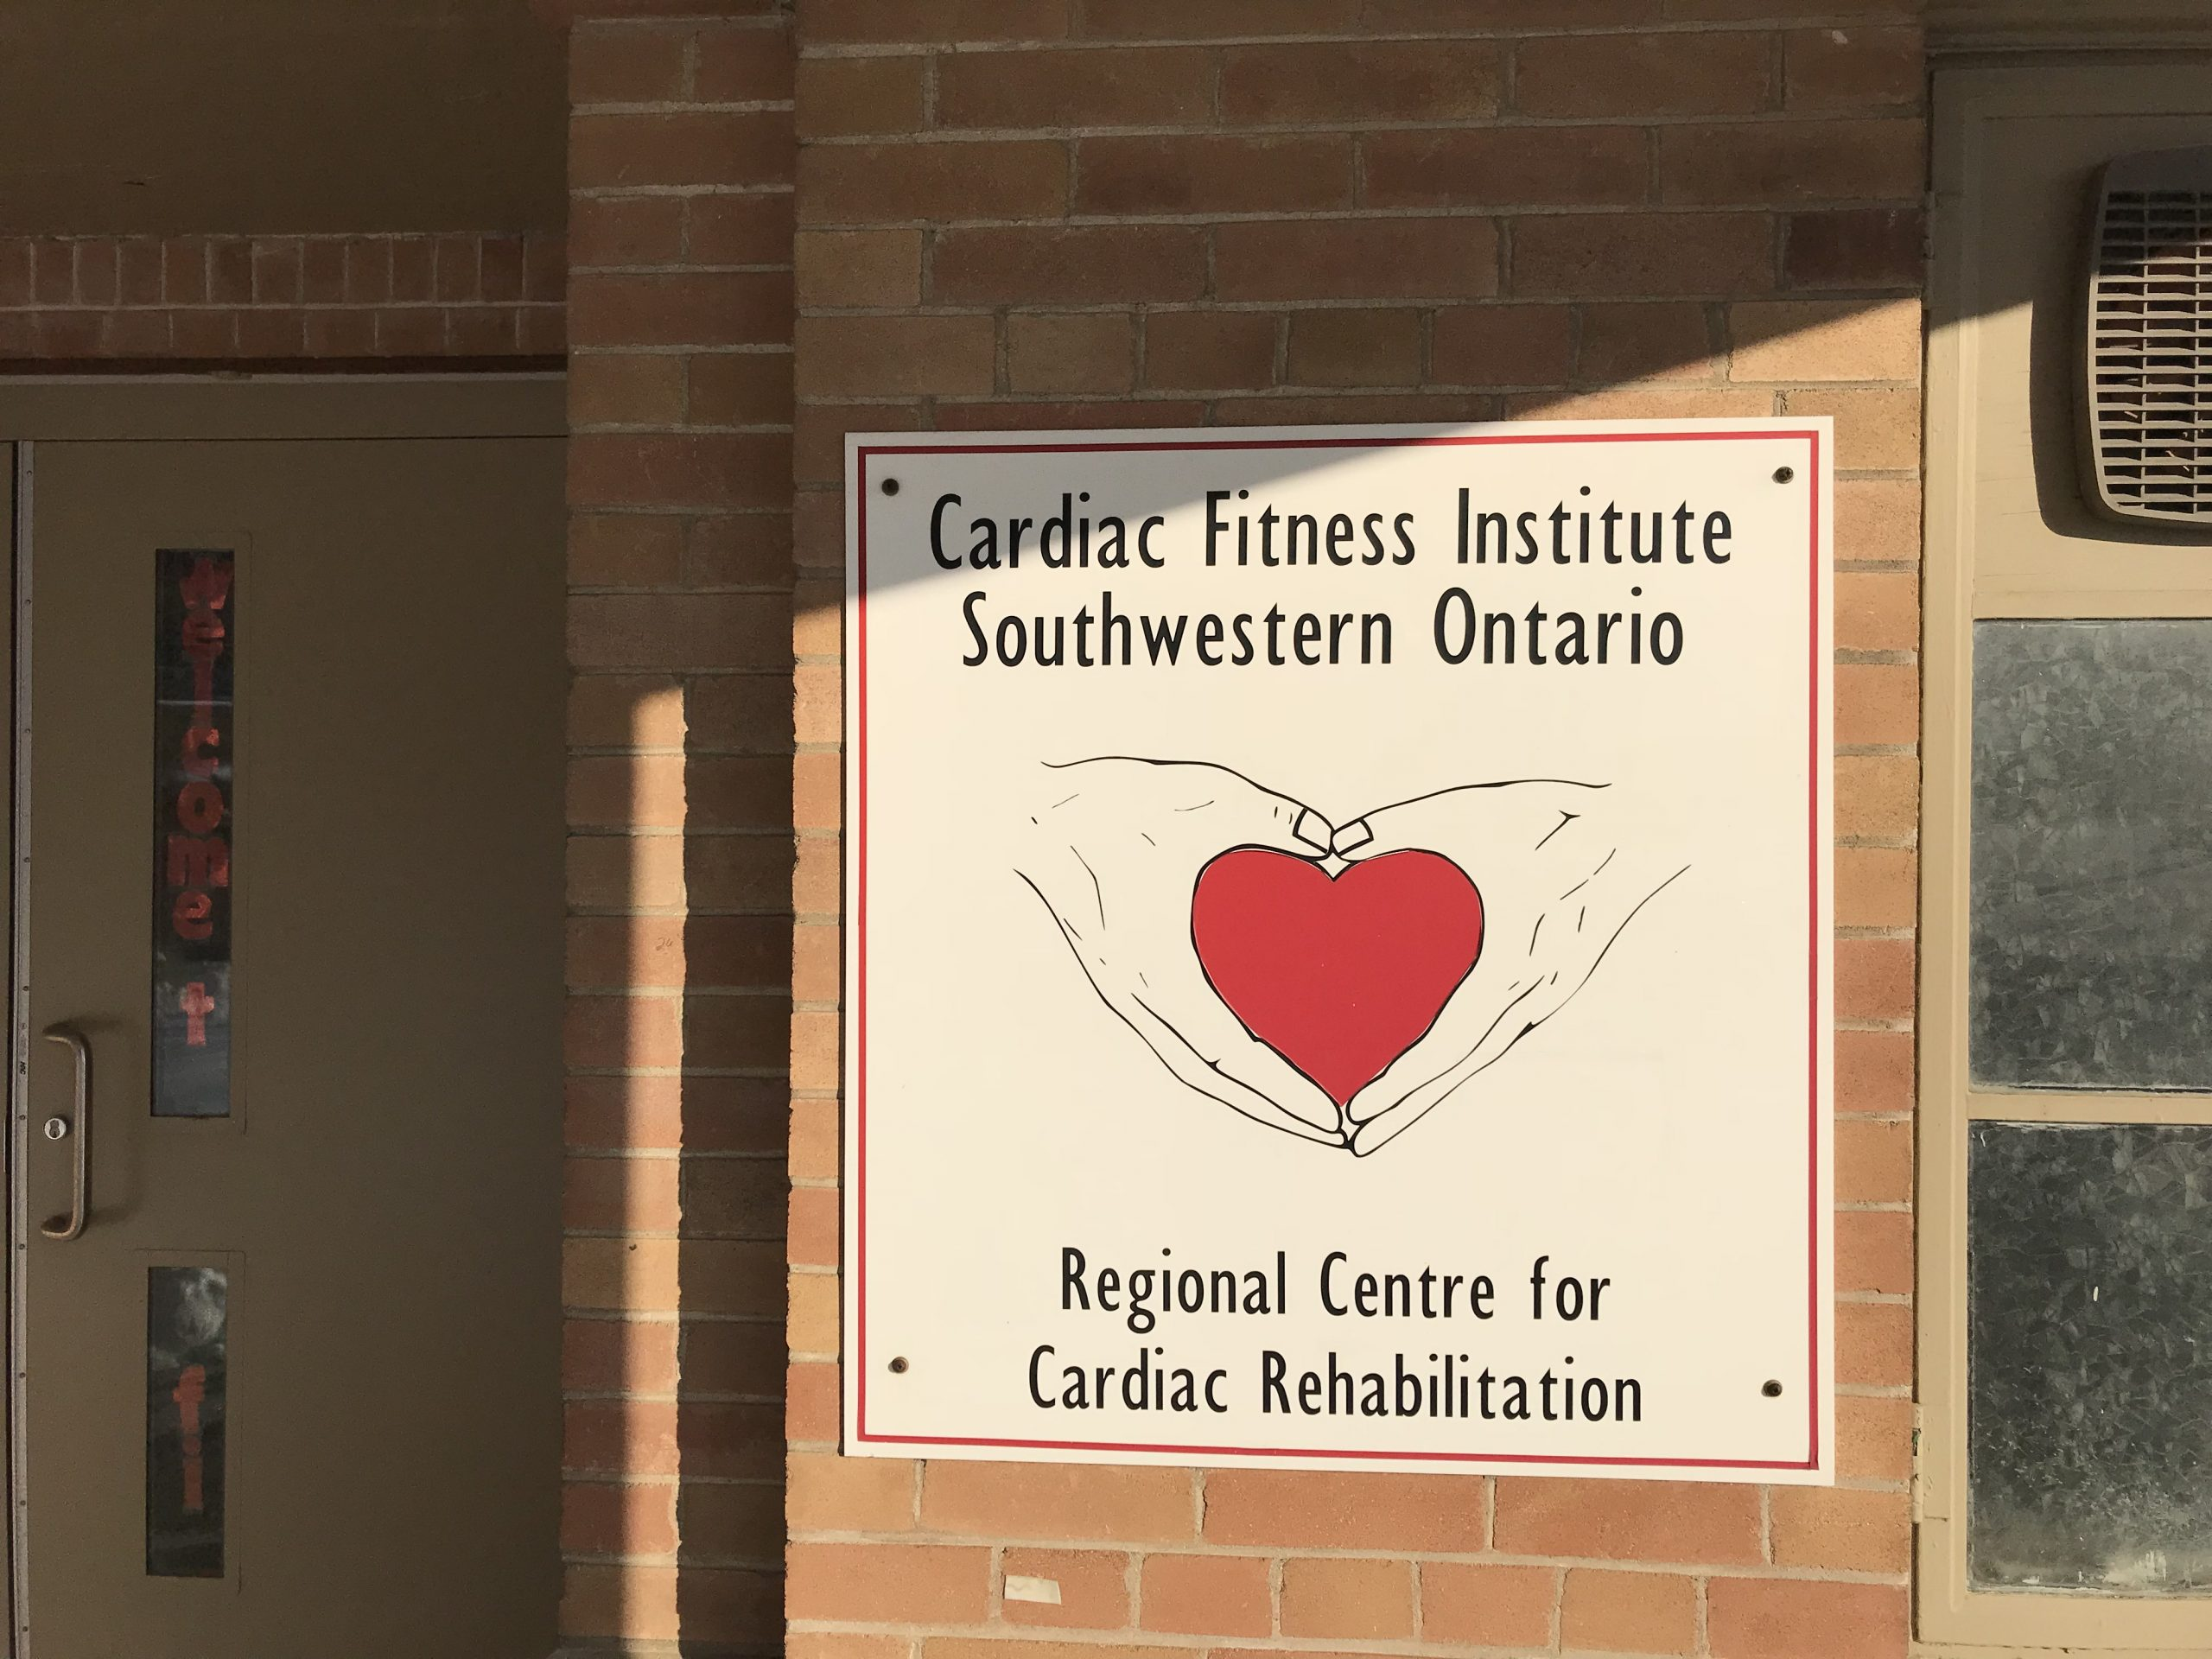 Cardiac Fitness Institute closure angers patients